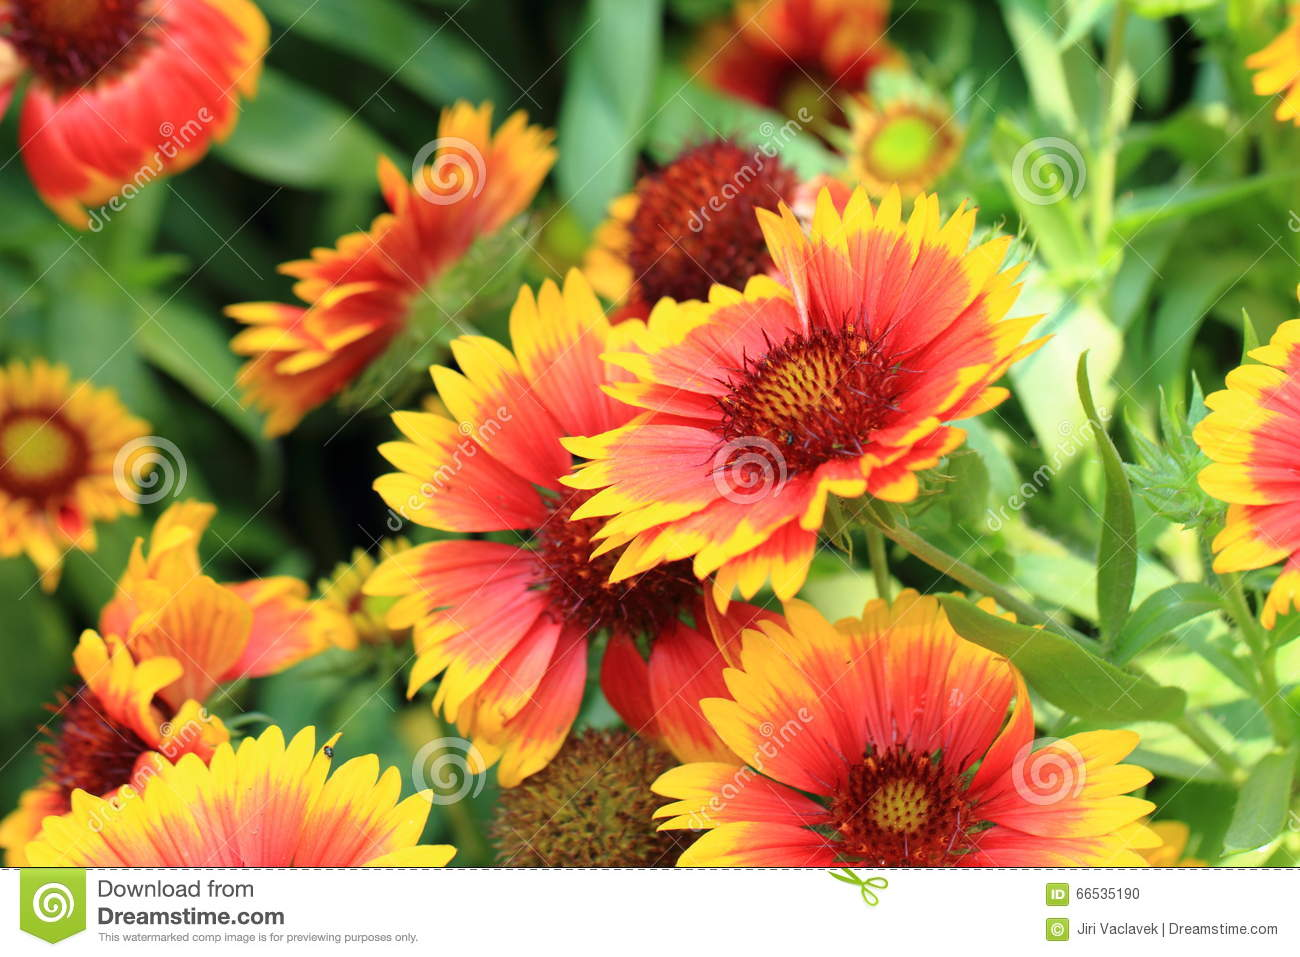 Color flowers background stock photo. Image of spring - 66535190